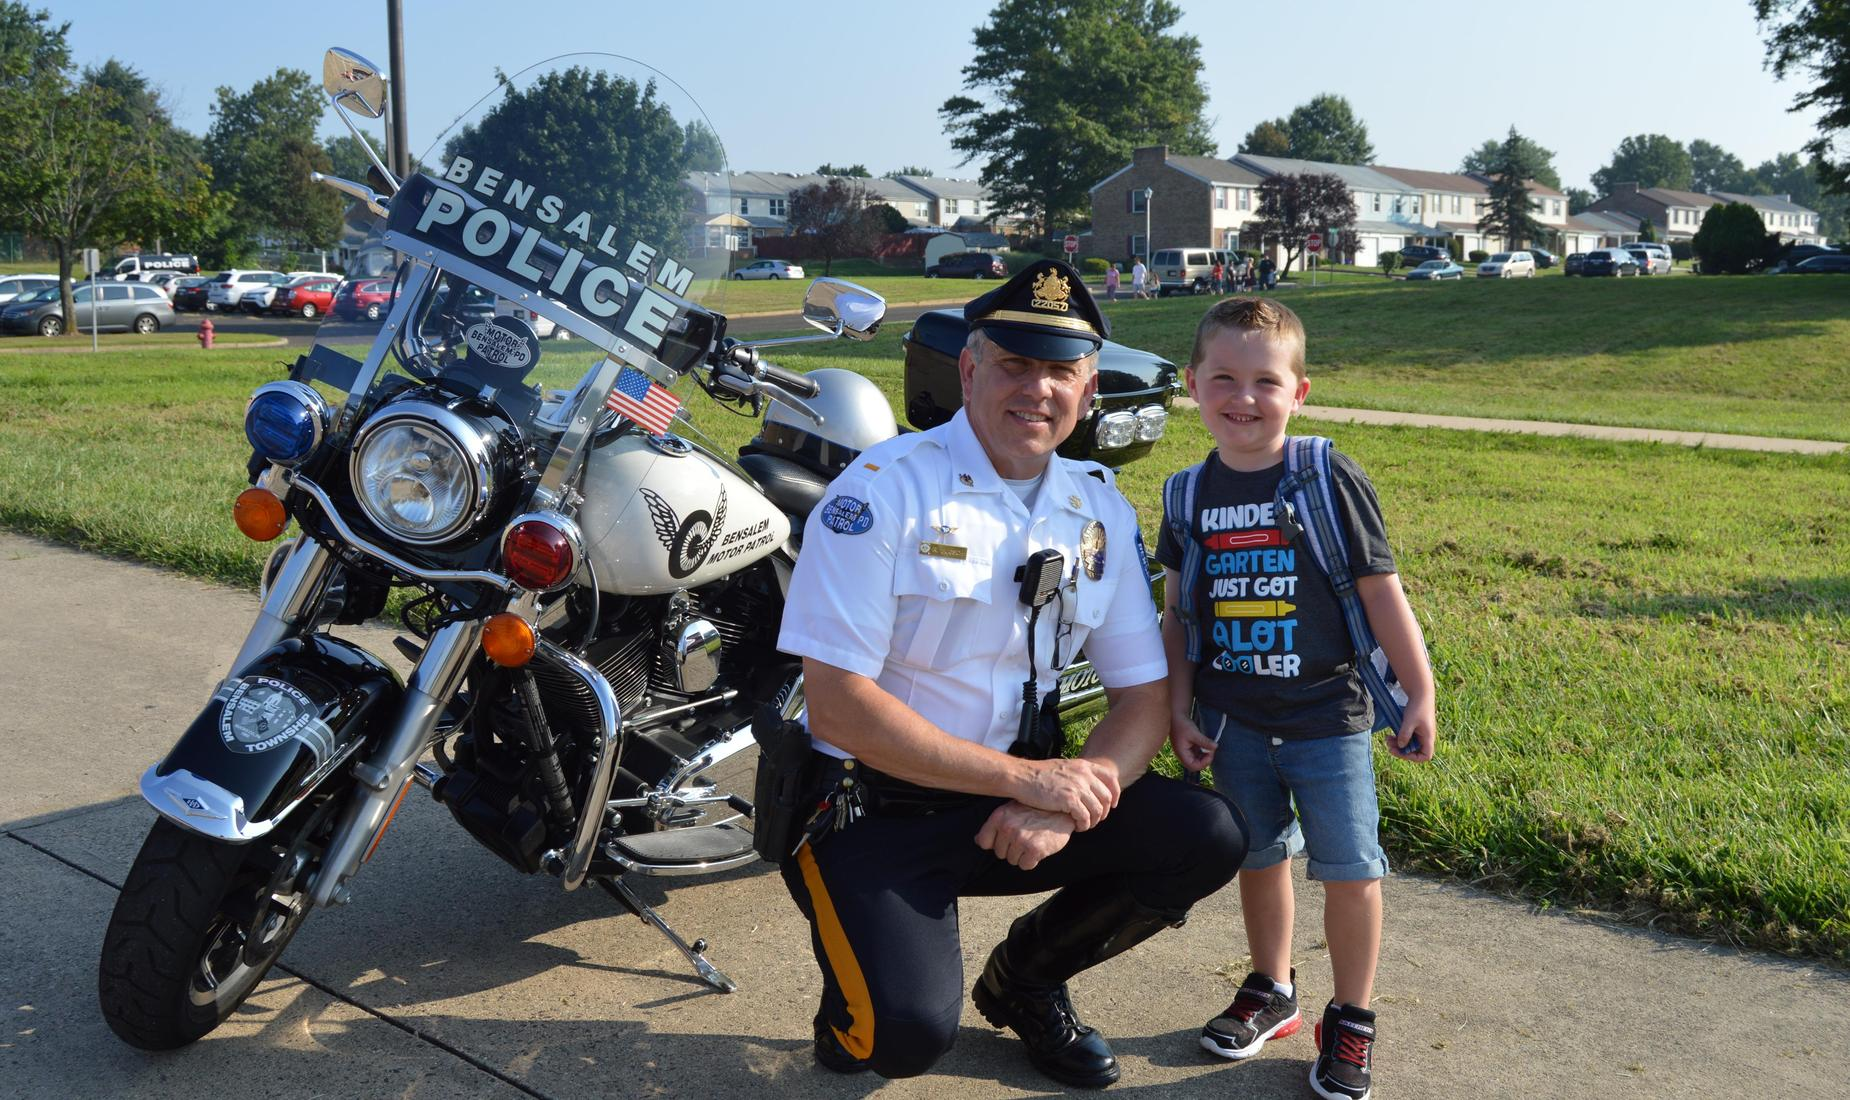 Bensalem Police Officer welcomes new students for the 2018-19 school year. Officer is posed with young boy in front of his motorcycle.